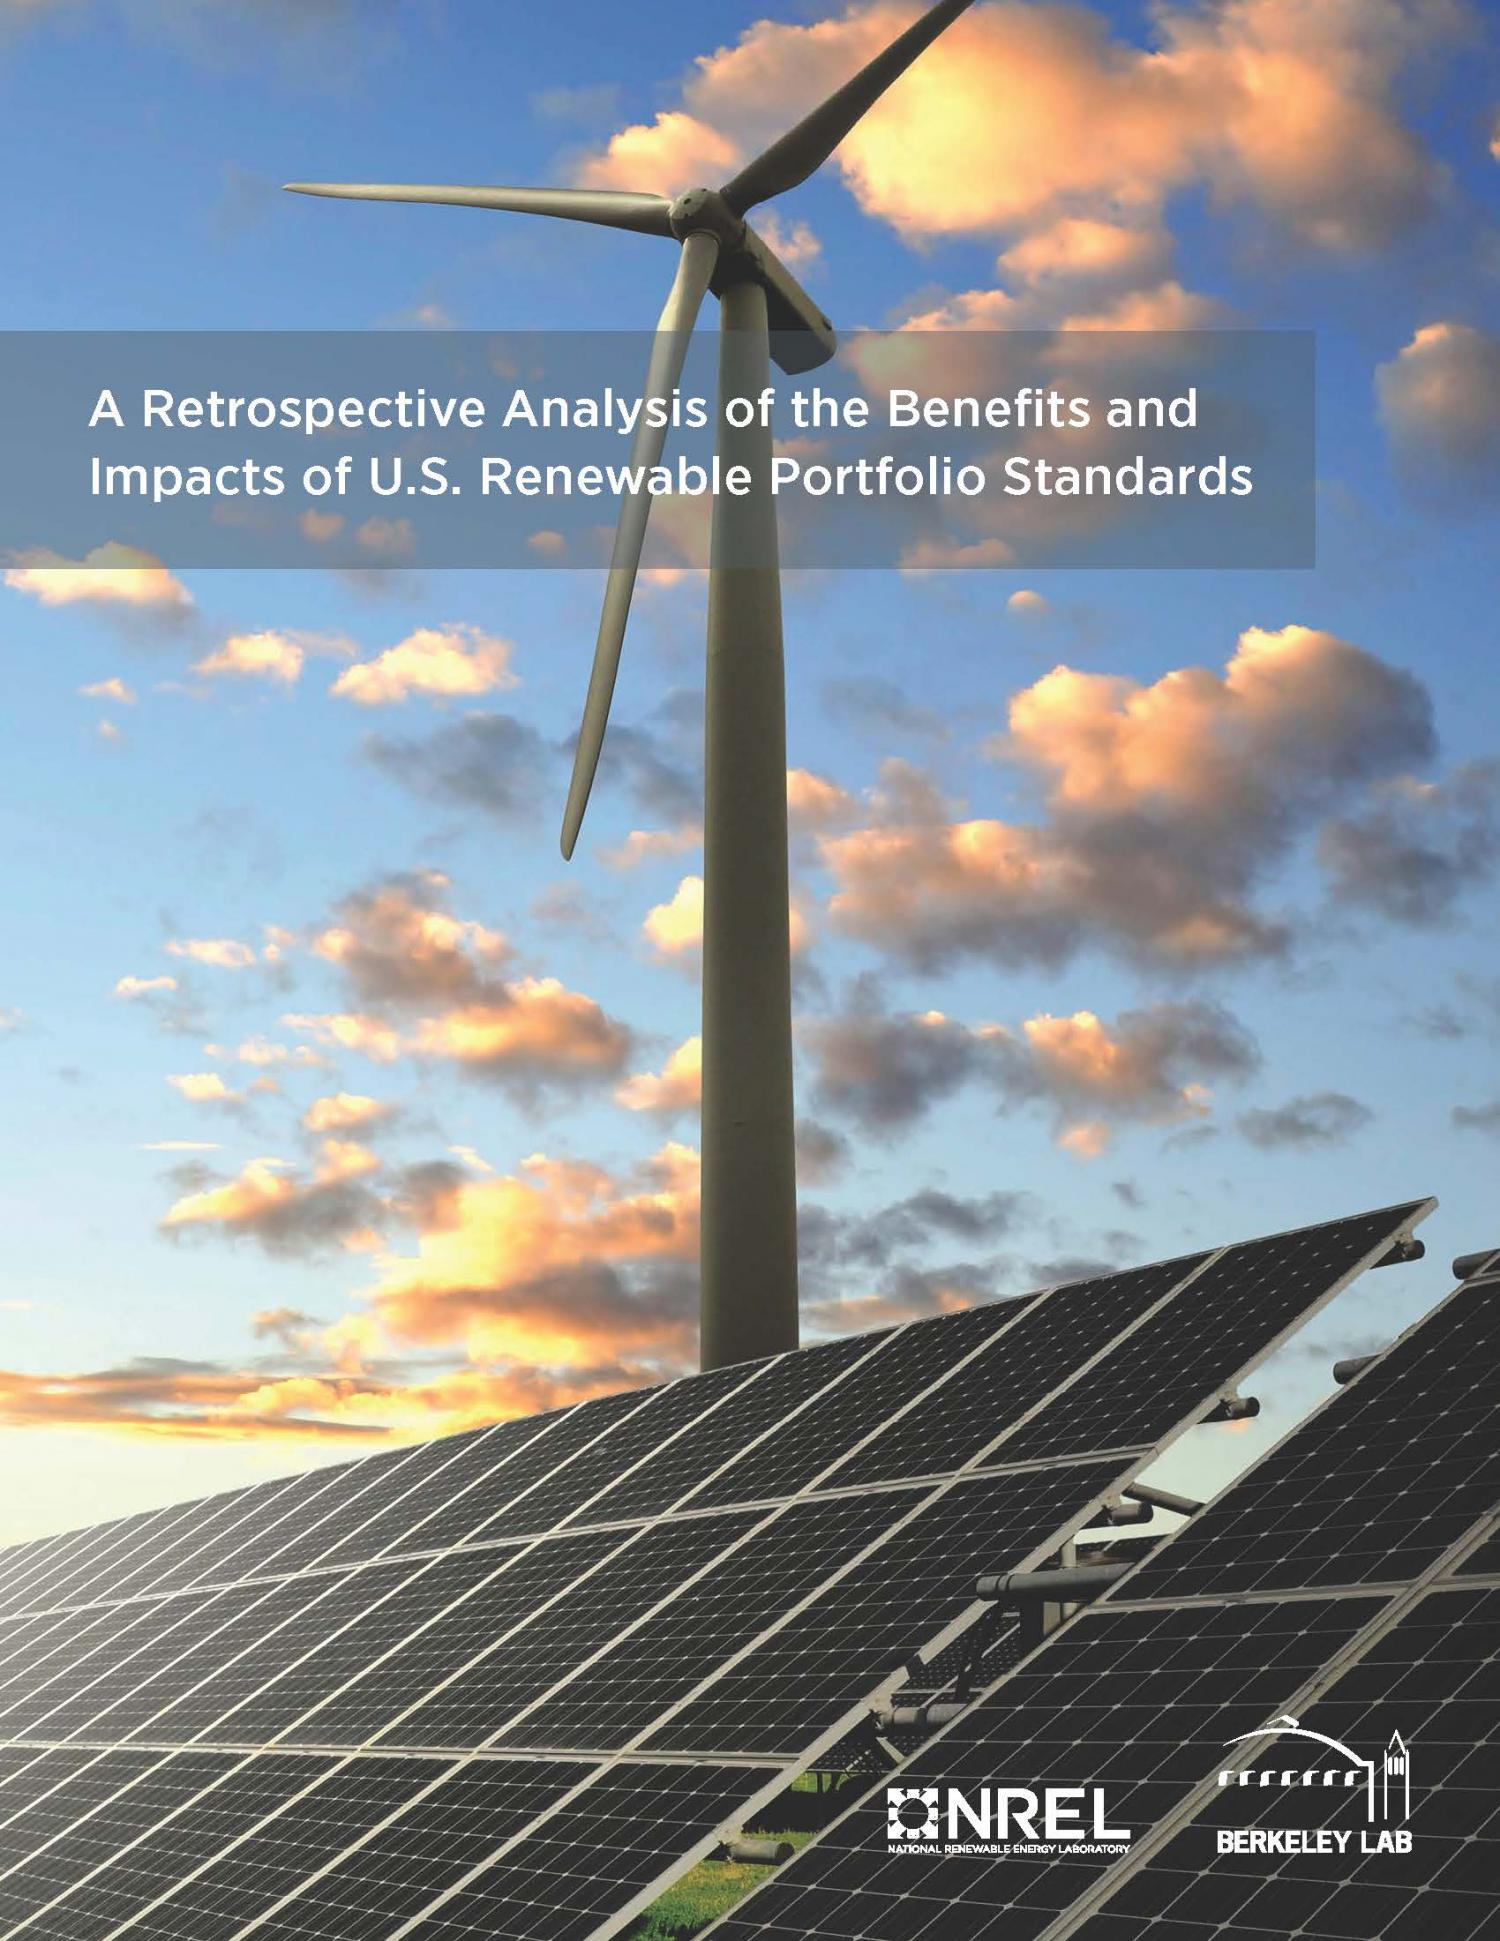 a research on renewable portfolio standards rps and the cost of solar energy New jersey's renewable portfolio standard (rps) was first adopted in 1999 and has been updated several times the total rps requirement in new jersey including solar carve out is 2439% by ey 2028 as it is set up today, the rps includes two separate provisions for renewable energy the first.